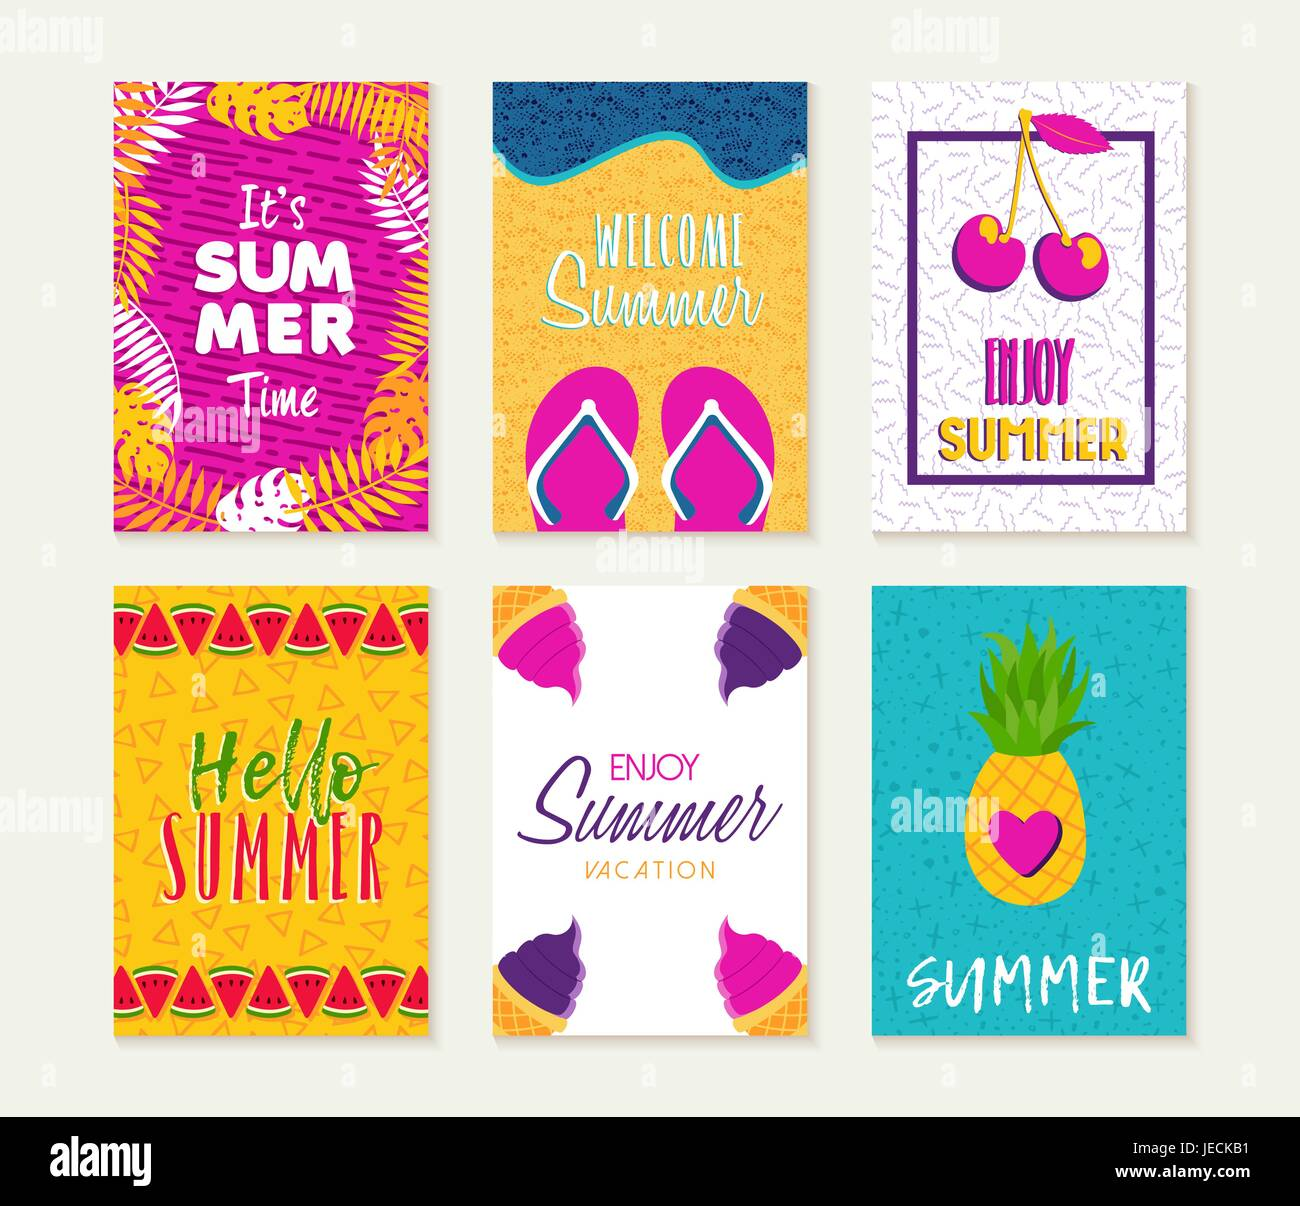 Summer Template Set Summertime Vacation Quotes With Fun Season Illustrations Ideal For Greeting Card Party Invitation Flyer Or Poster EPS10 Vecto